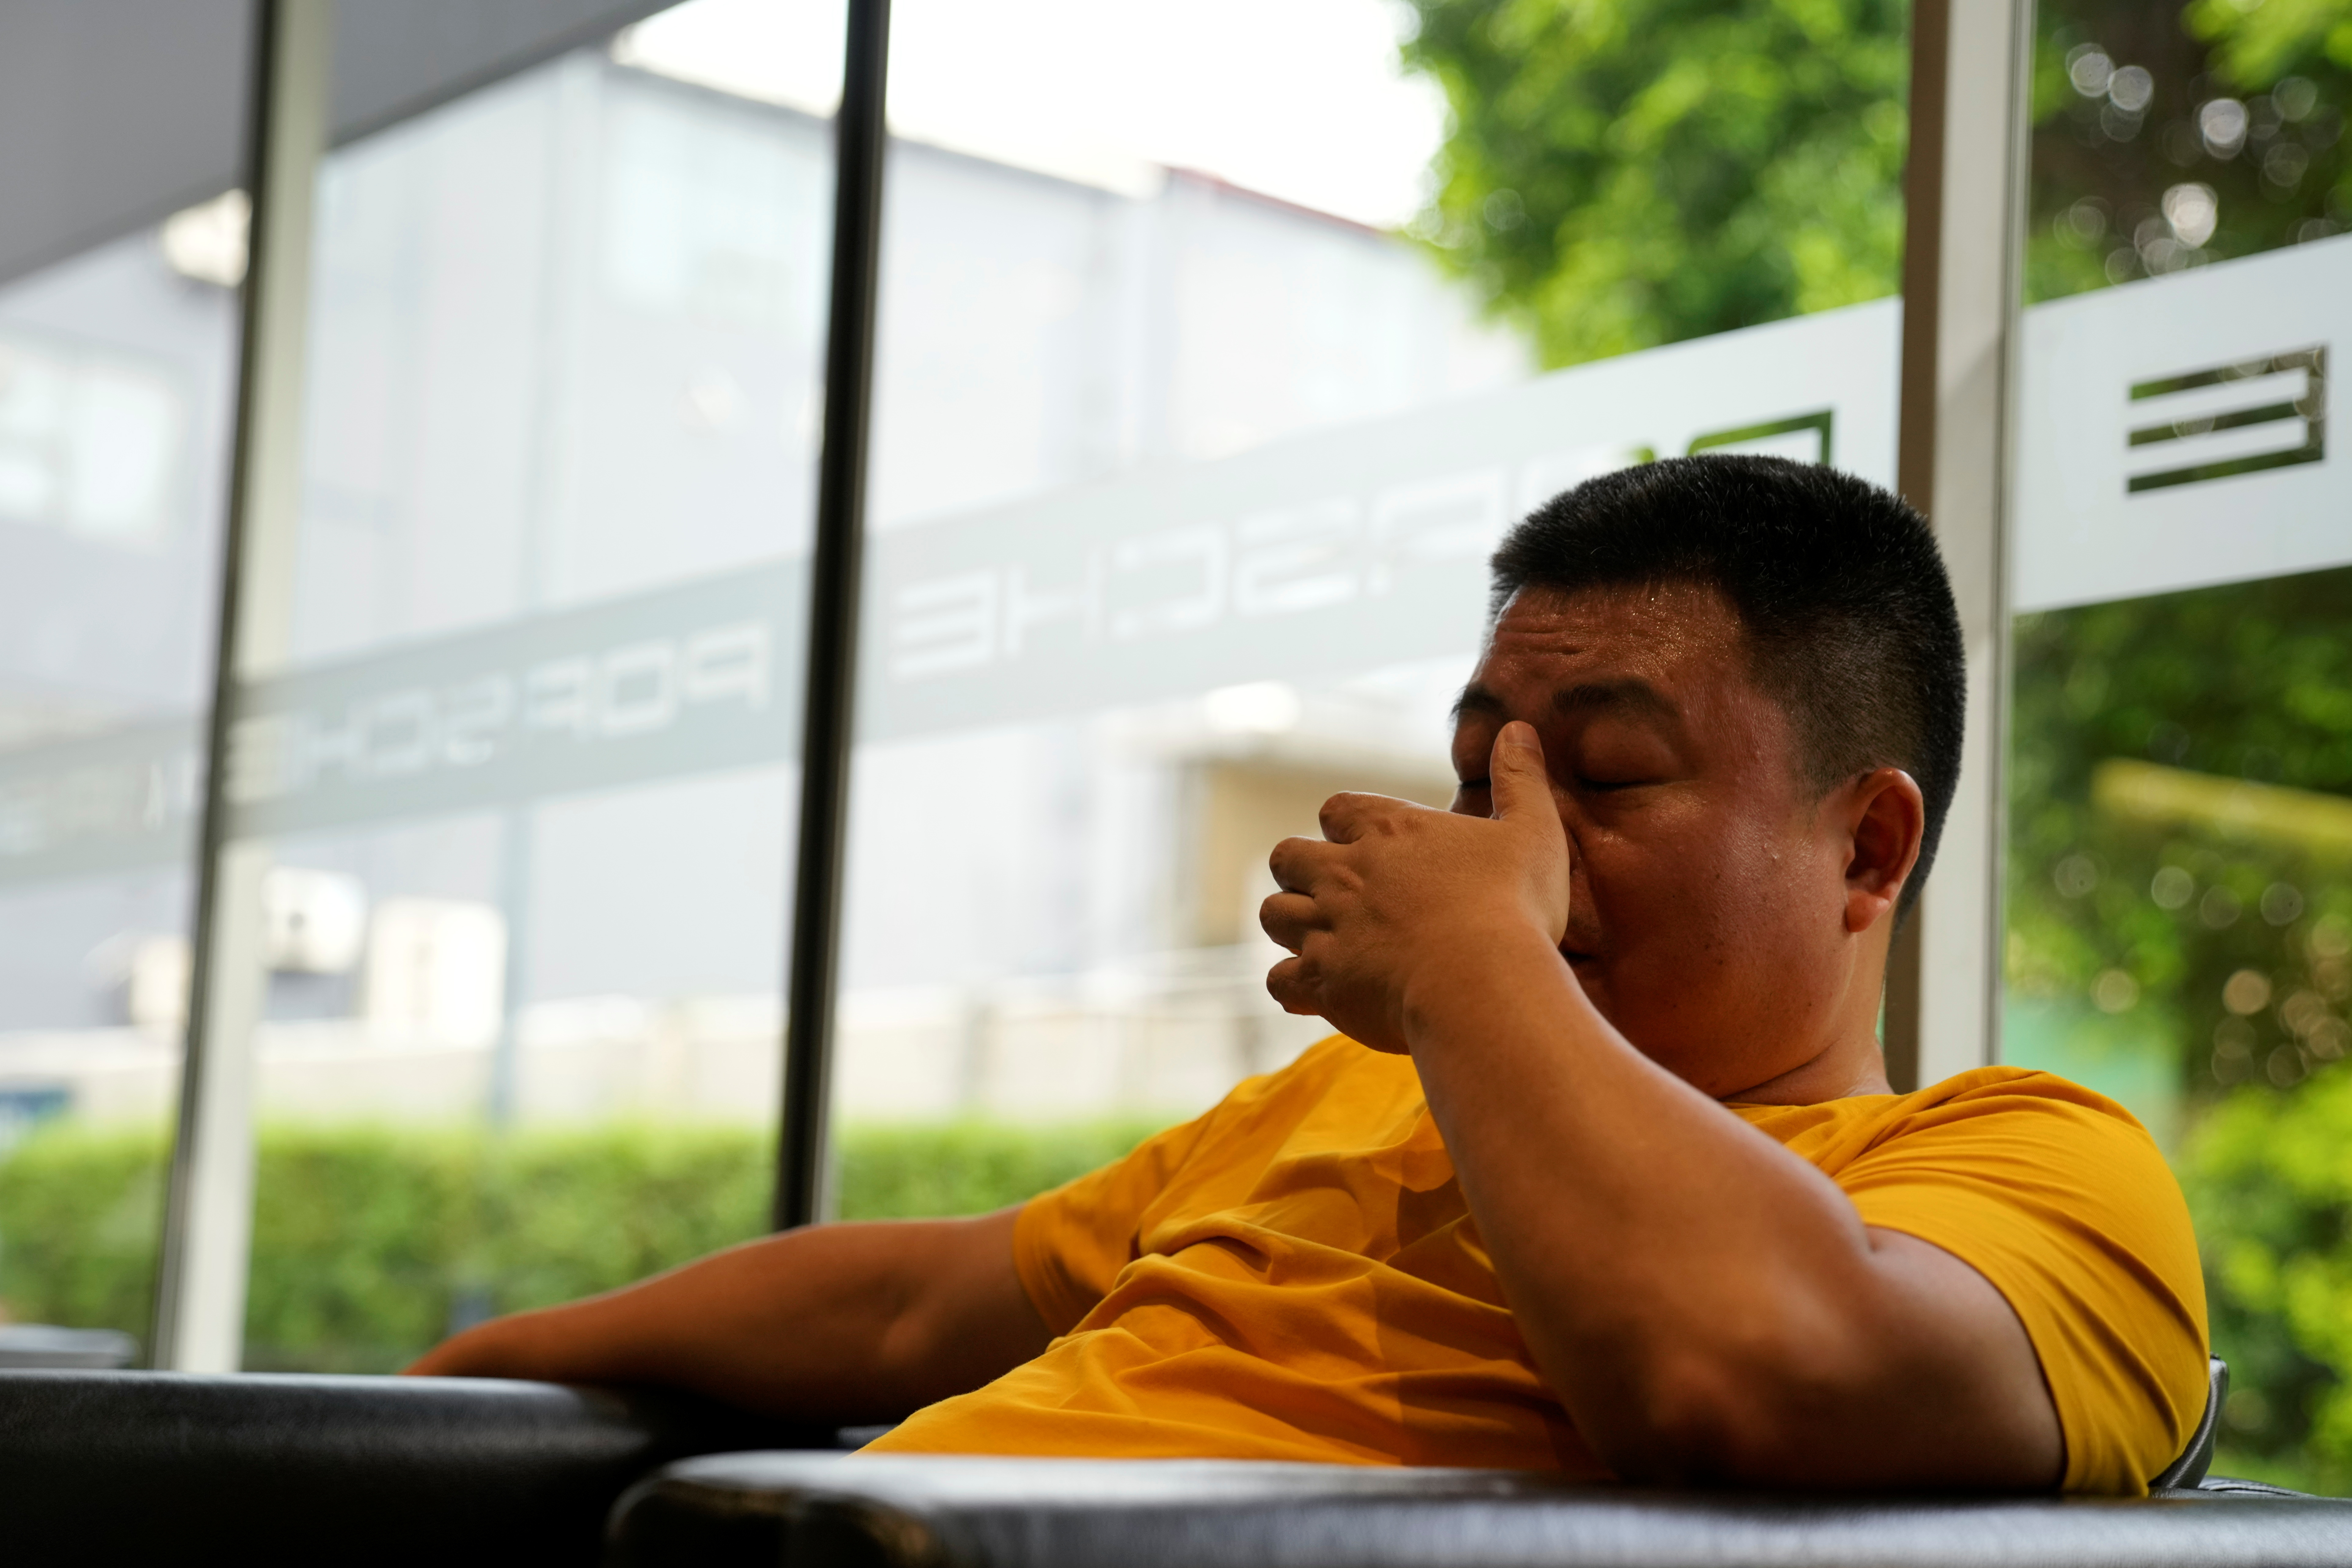 Guo Hui, whose cleaning business is owed money by China Evergrande Group, reacts as he waits at a car dealership to sell his Porsche Cayenne in order to pay his debts, in Guangzhou, Guangdong province, China September 27, 2021. Picture taken September 27, 2021. REUTERS/Aly Song